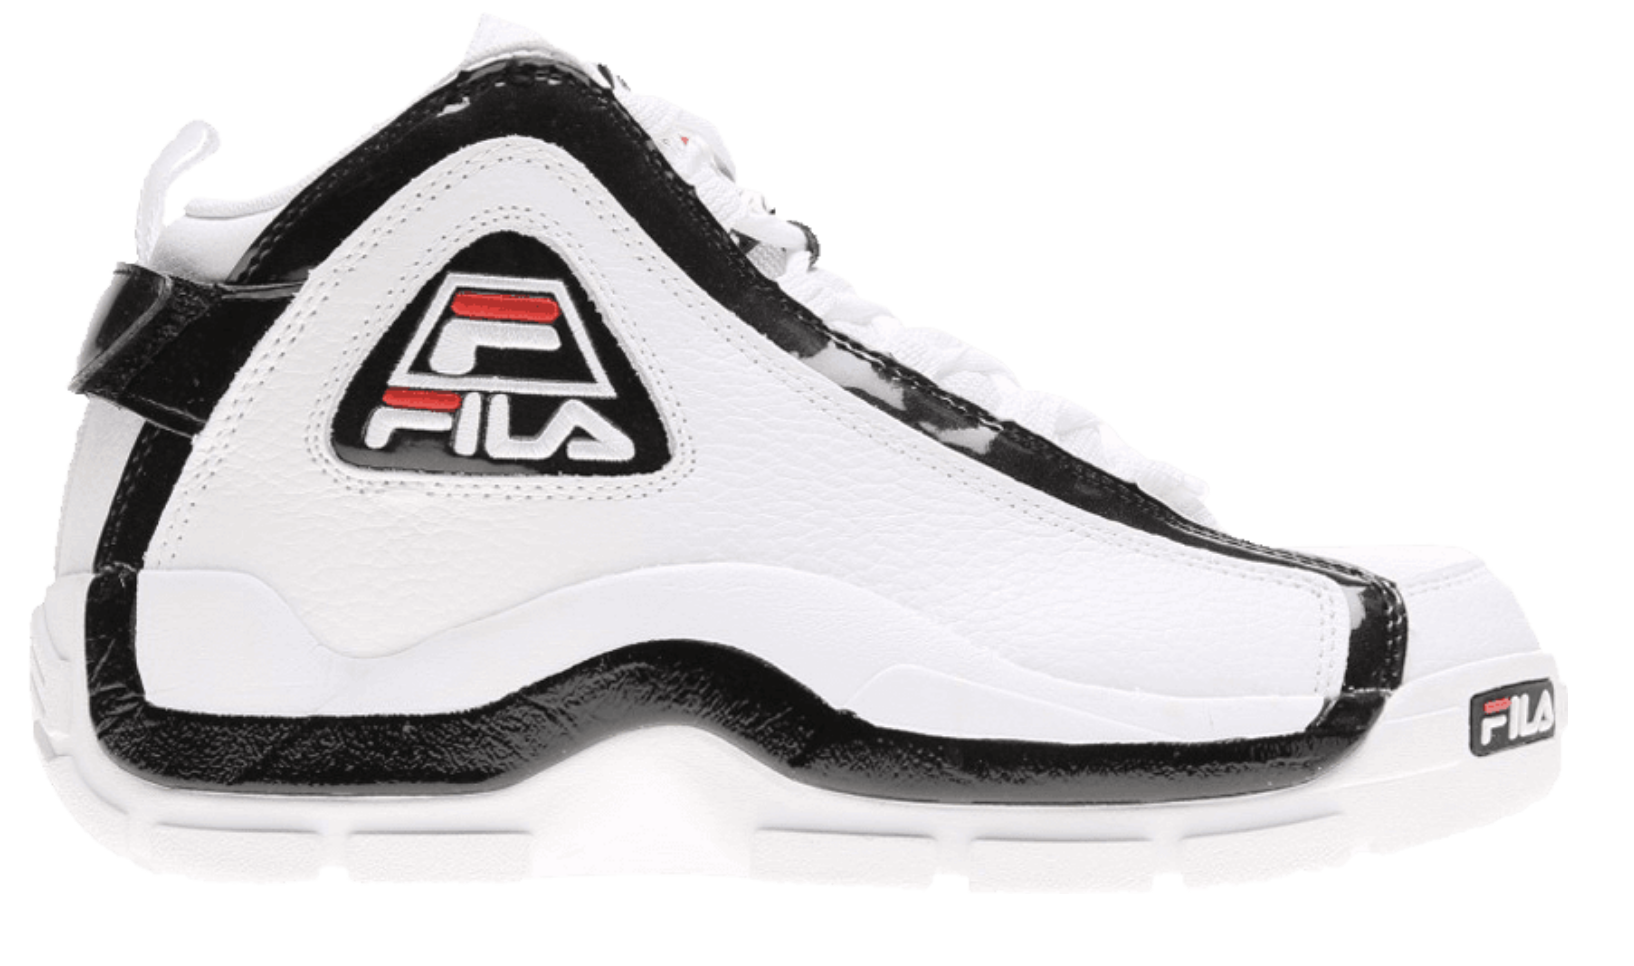 Chaussures Fila Basket Ball Fila Achat Vente Chaussures